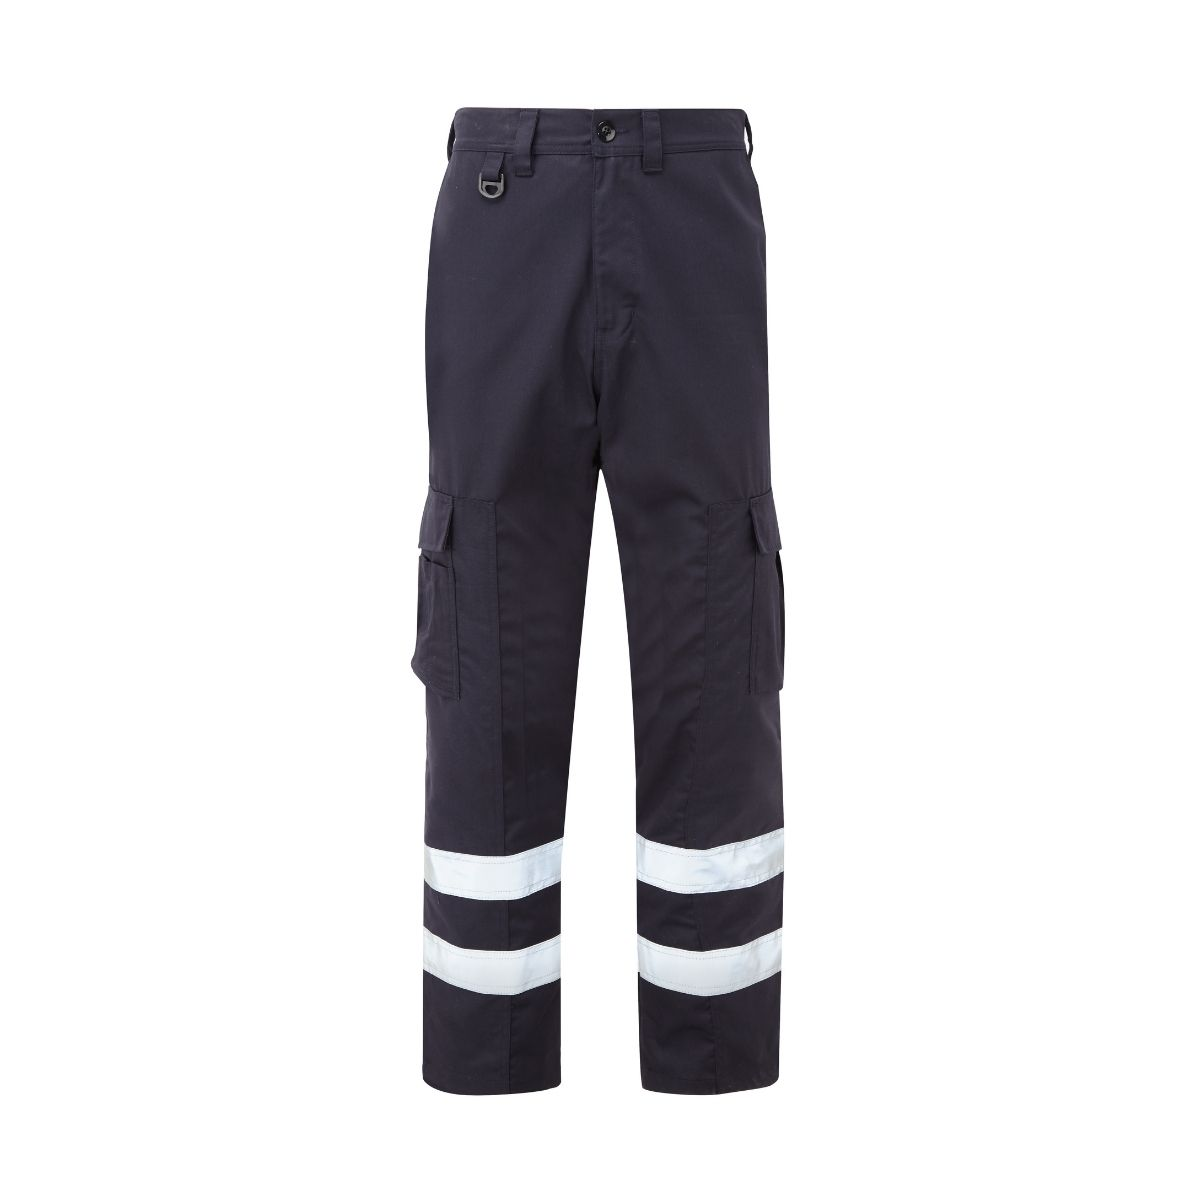 TR1840 Lightweight Ballistic Trousers With Hi-Vis Bands